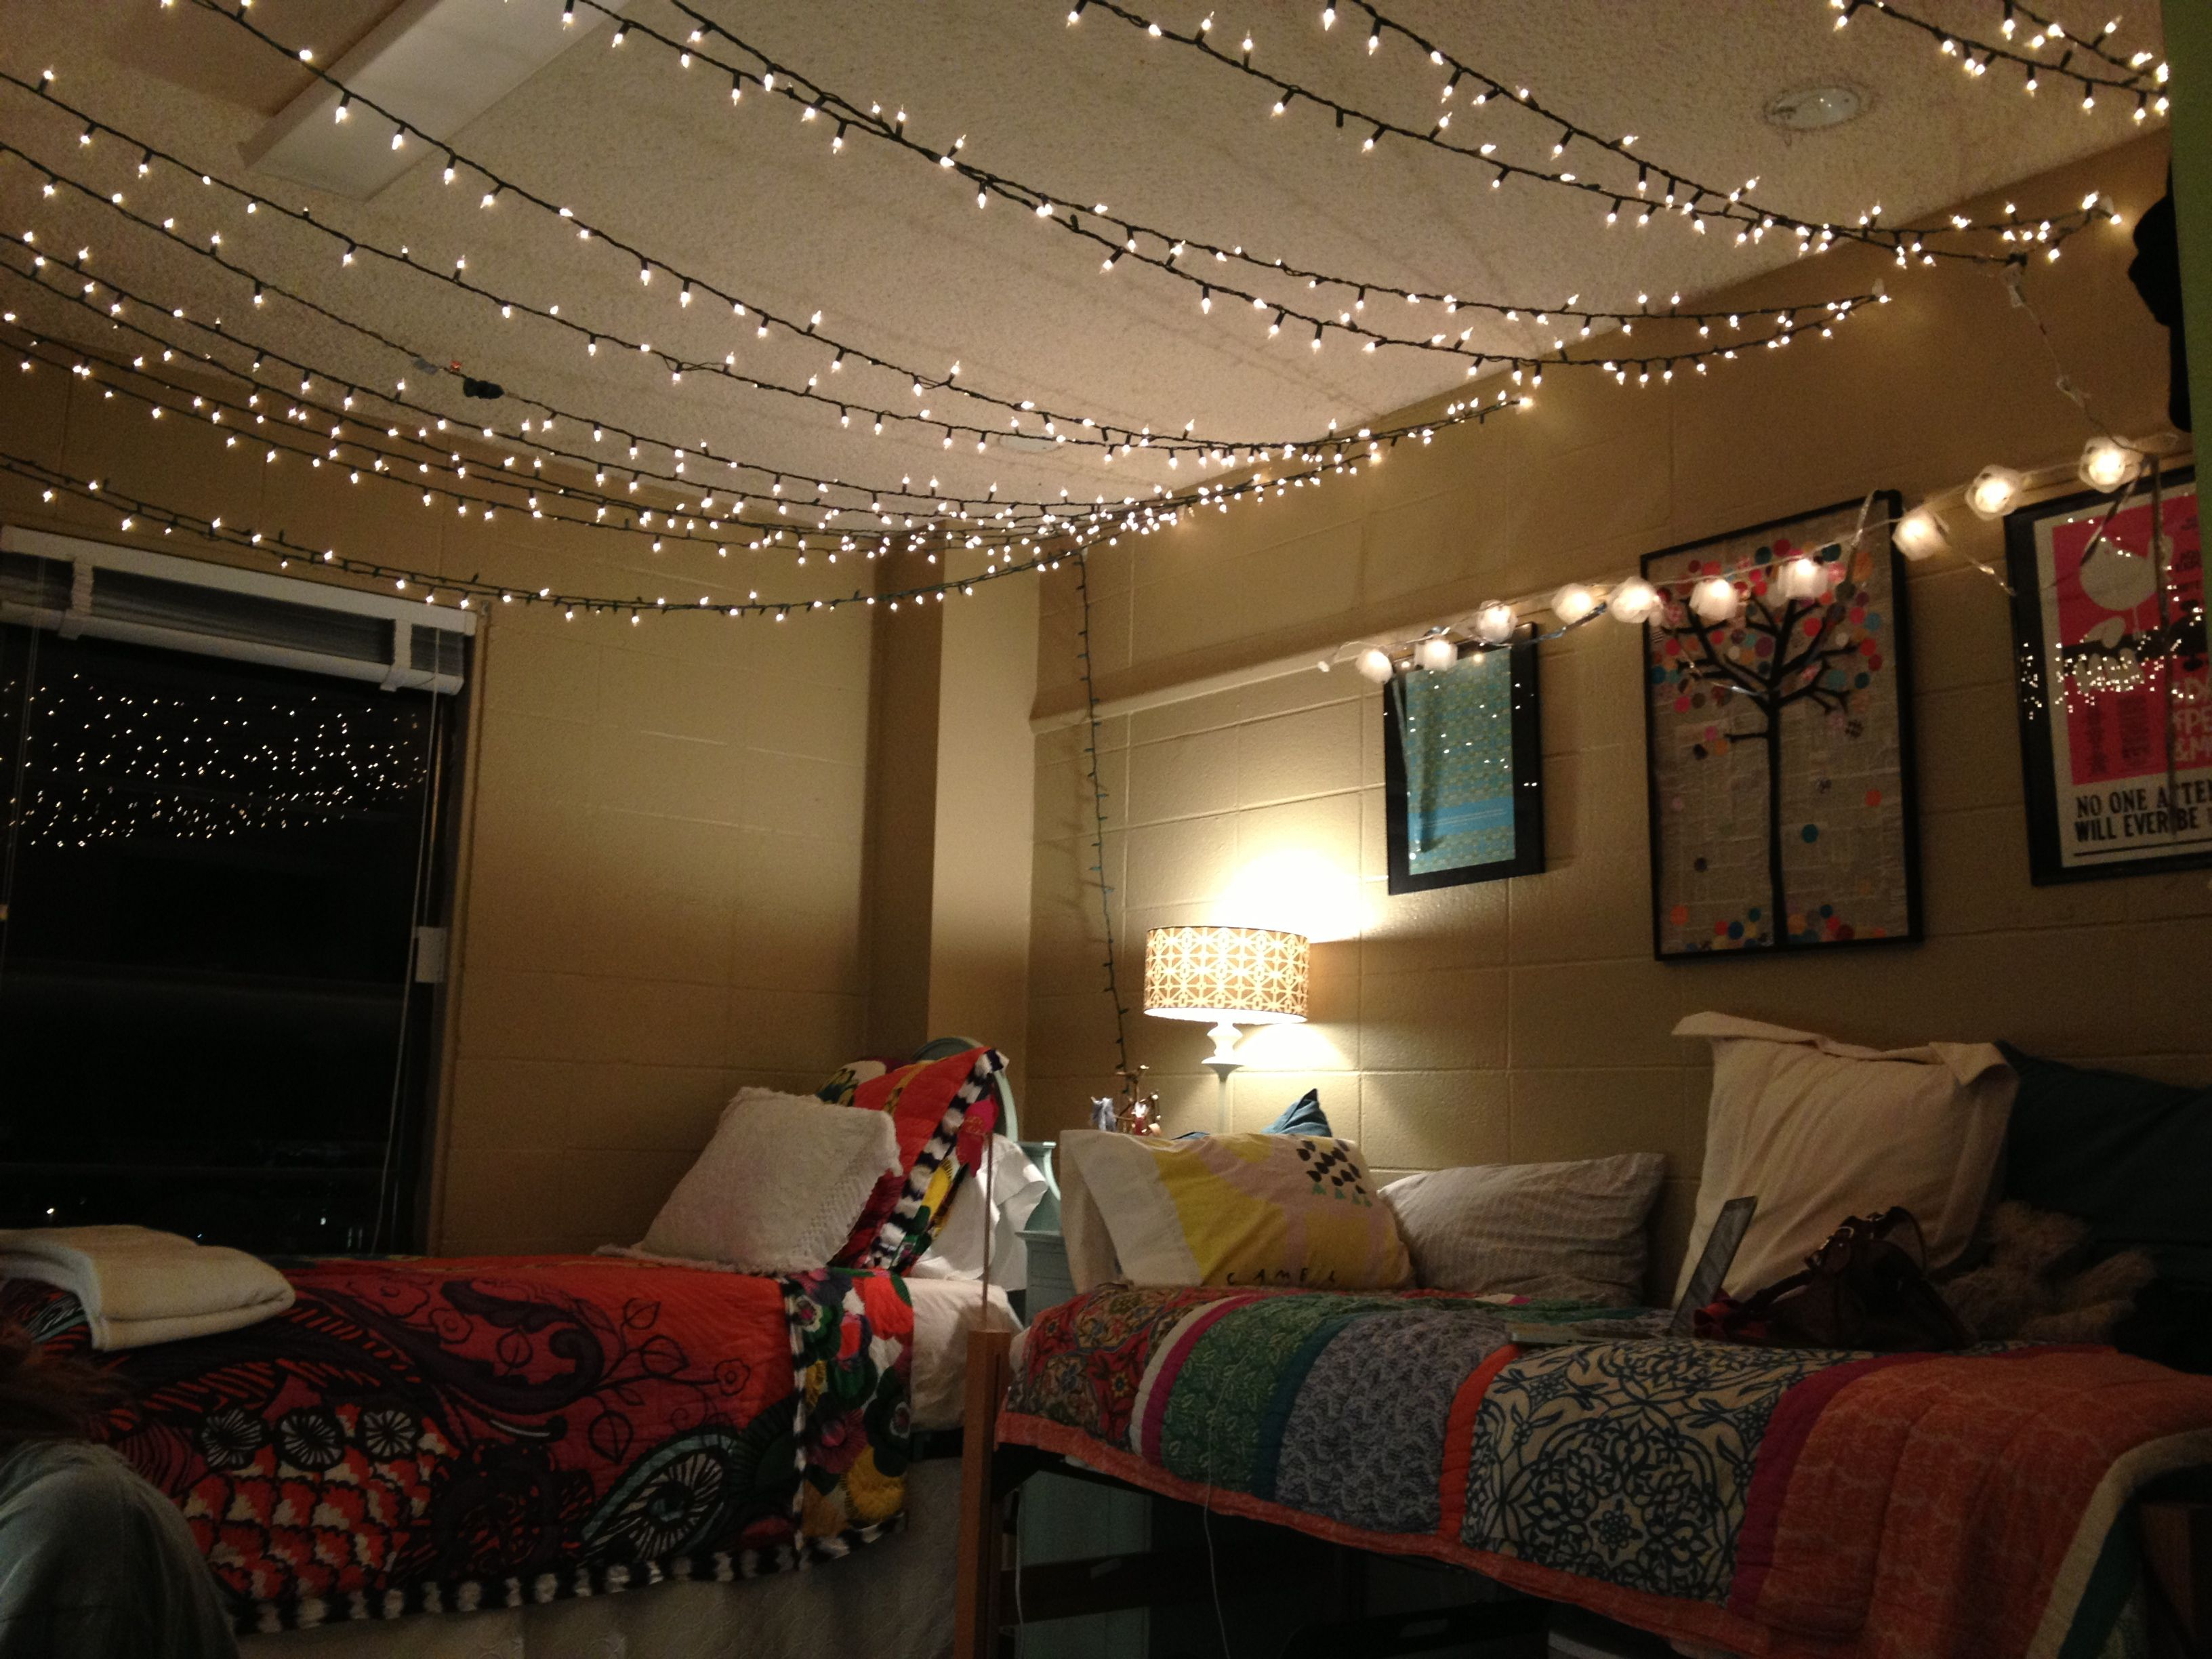 String Lights For Your Room : Pin by Brittanee Schaupp on String Lights. Pinterest